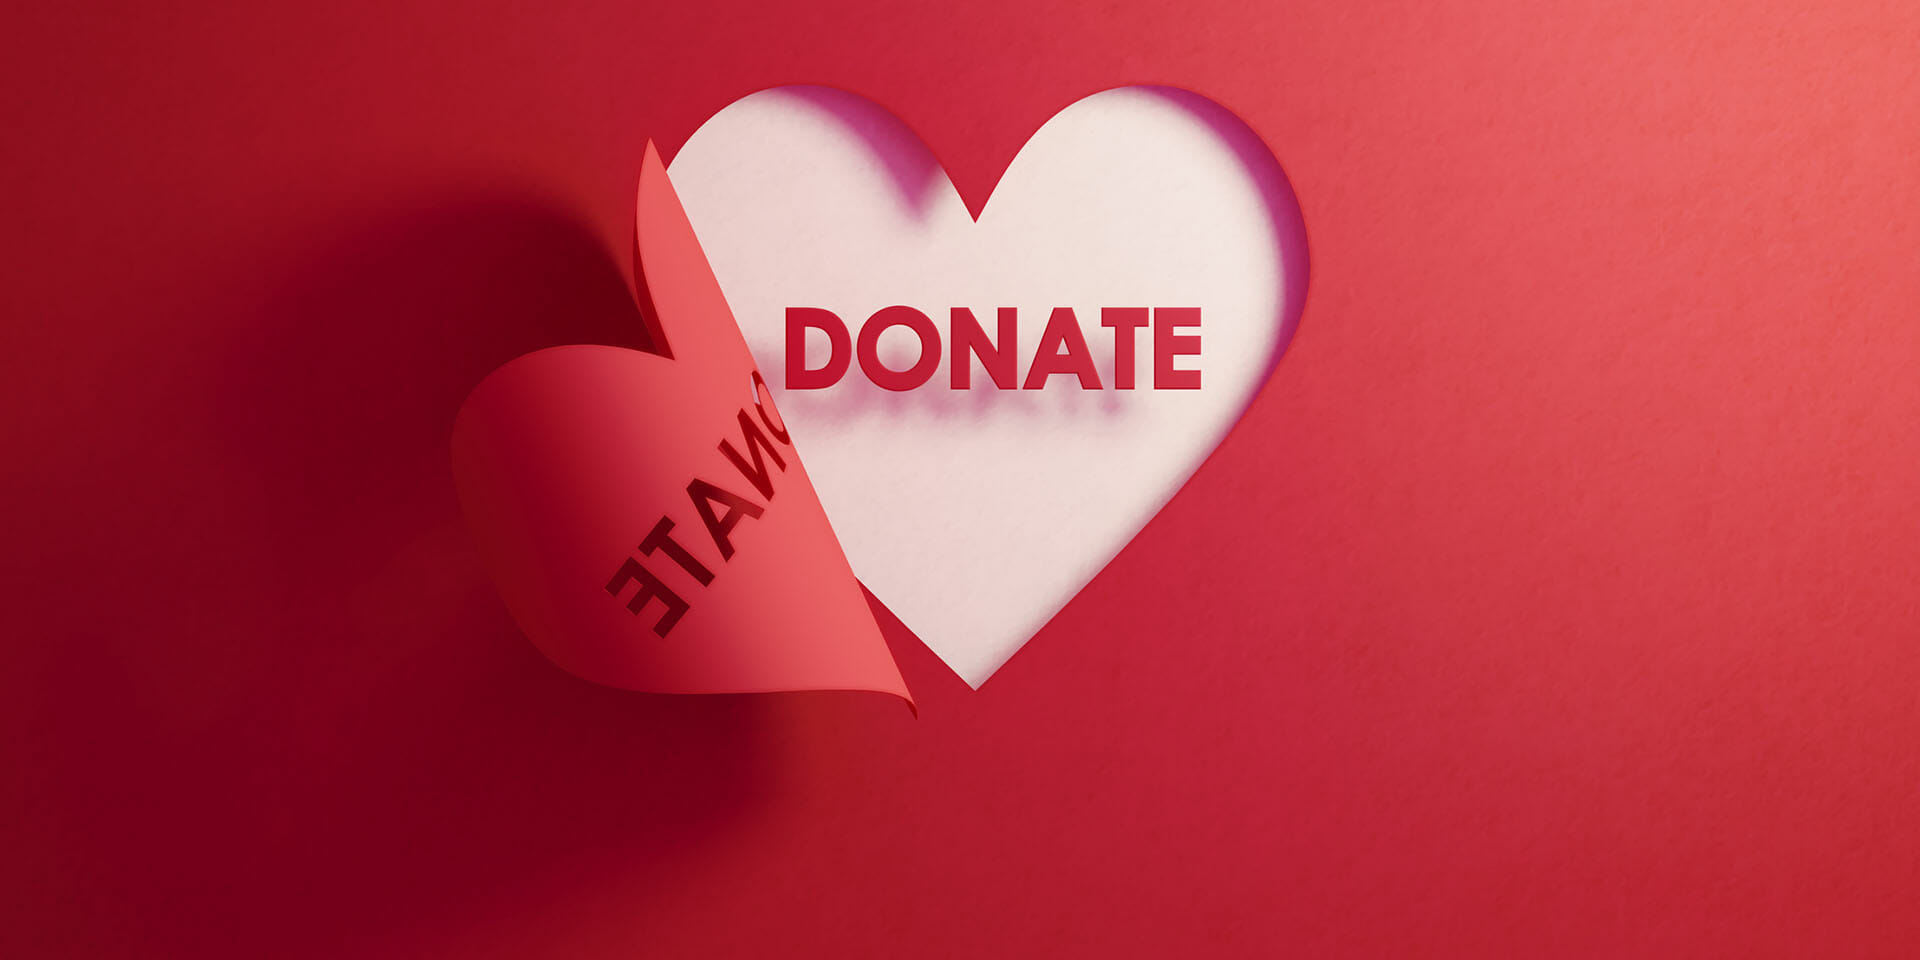 Donate to FEAST image of heart